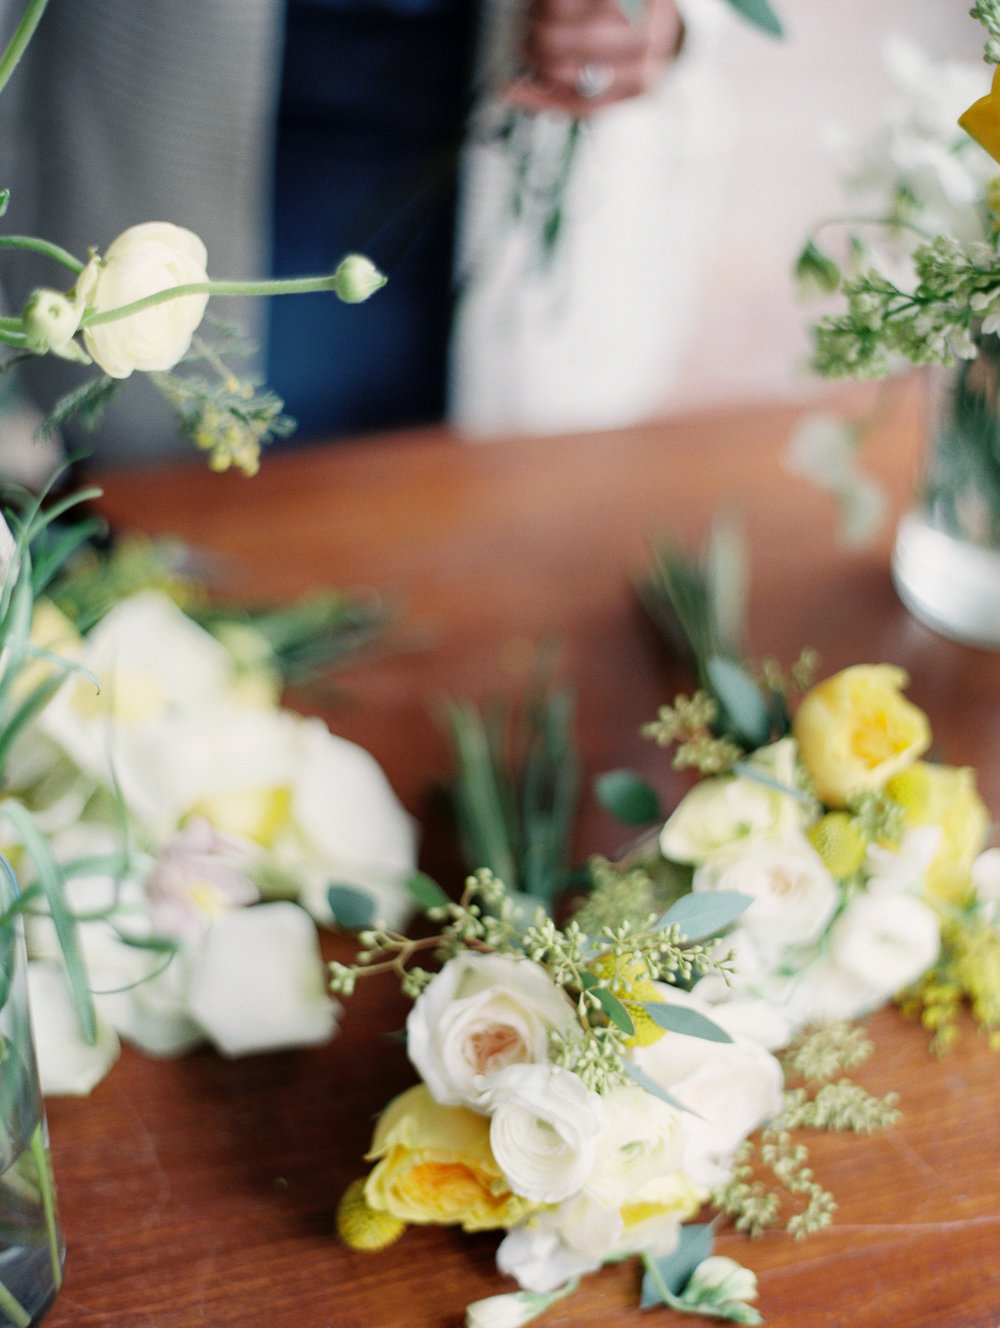 Flowers by Fleur, photo by Clary Pfeiffer Photo